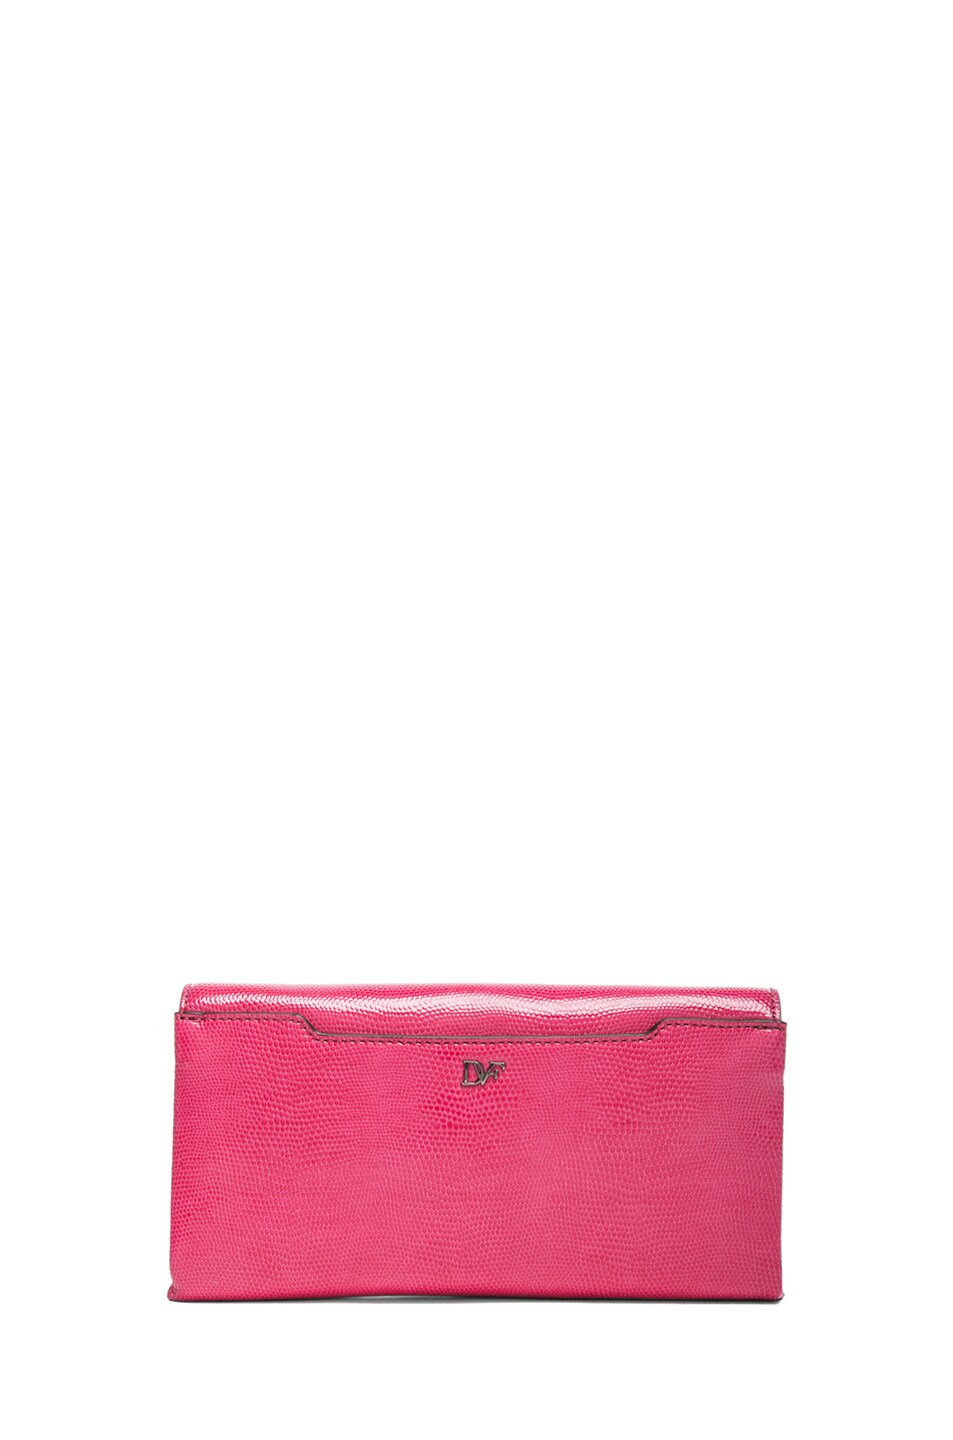 Image 2 of Diane von Furstenberg Envelope Lizard Embossed Clutch in Rasberry